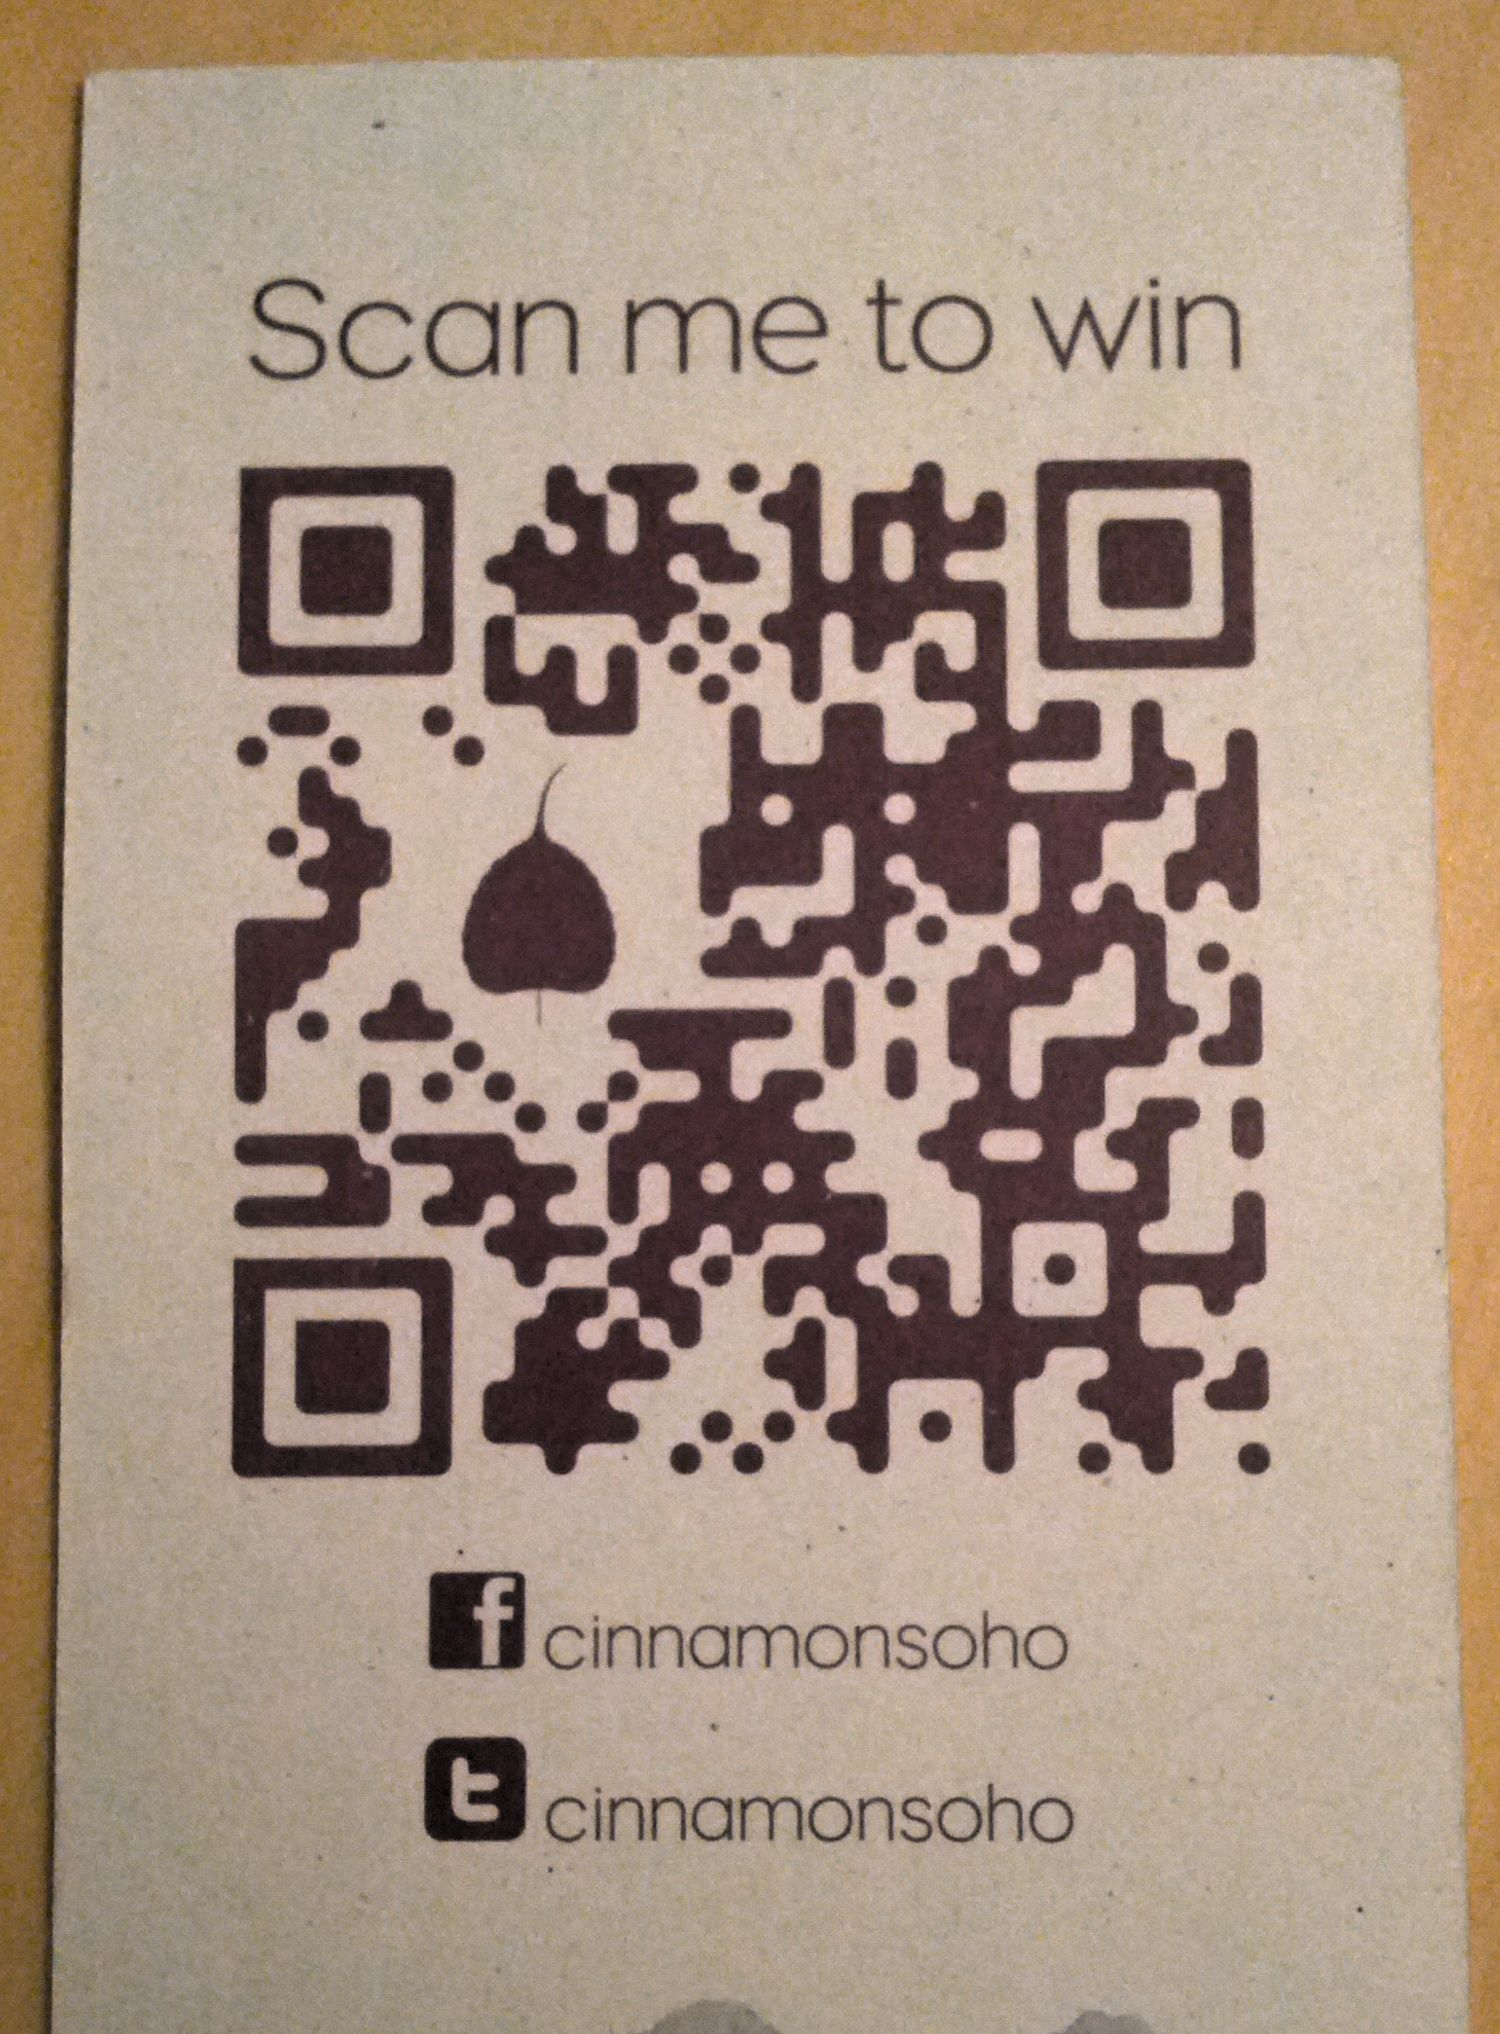 qr code on the back of a business card for cinnamon soho